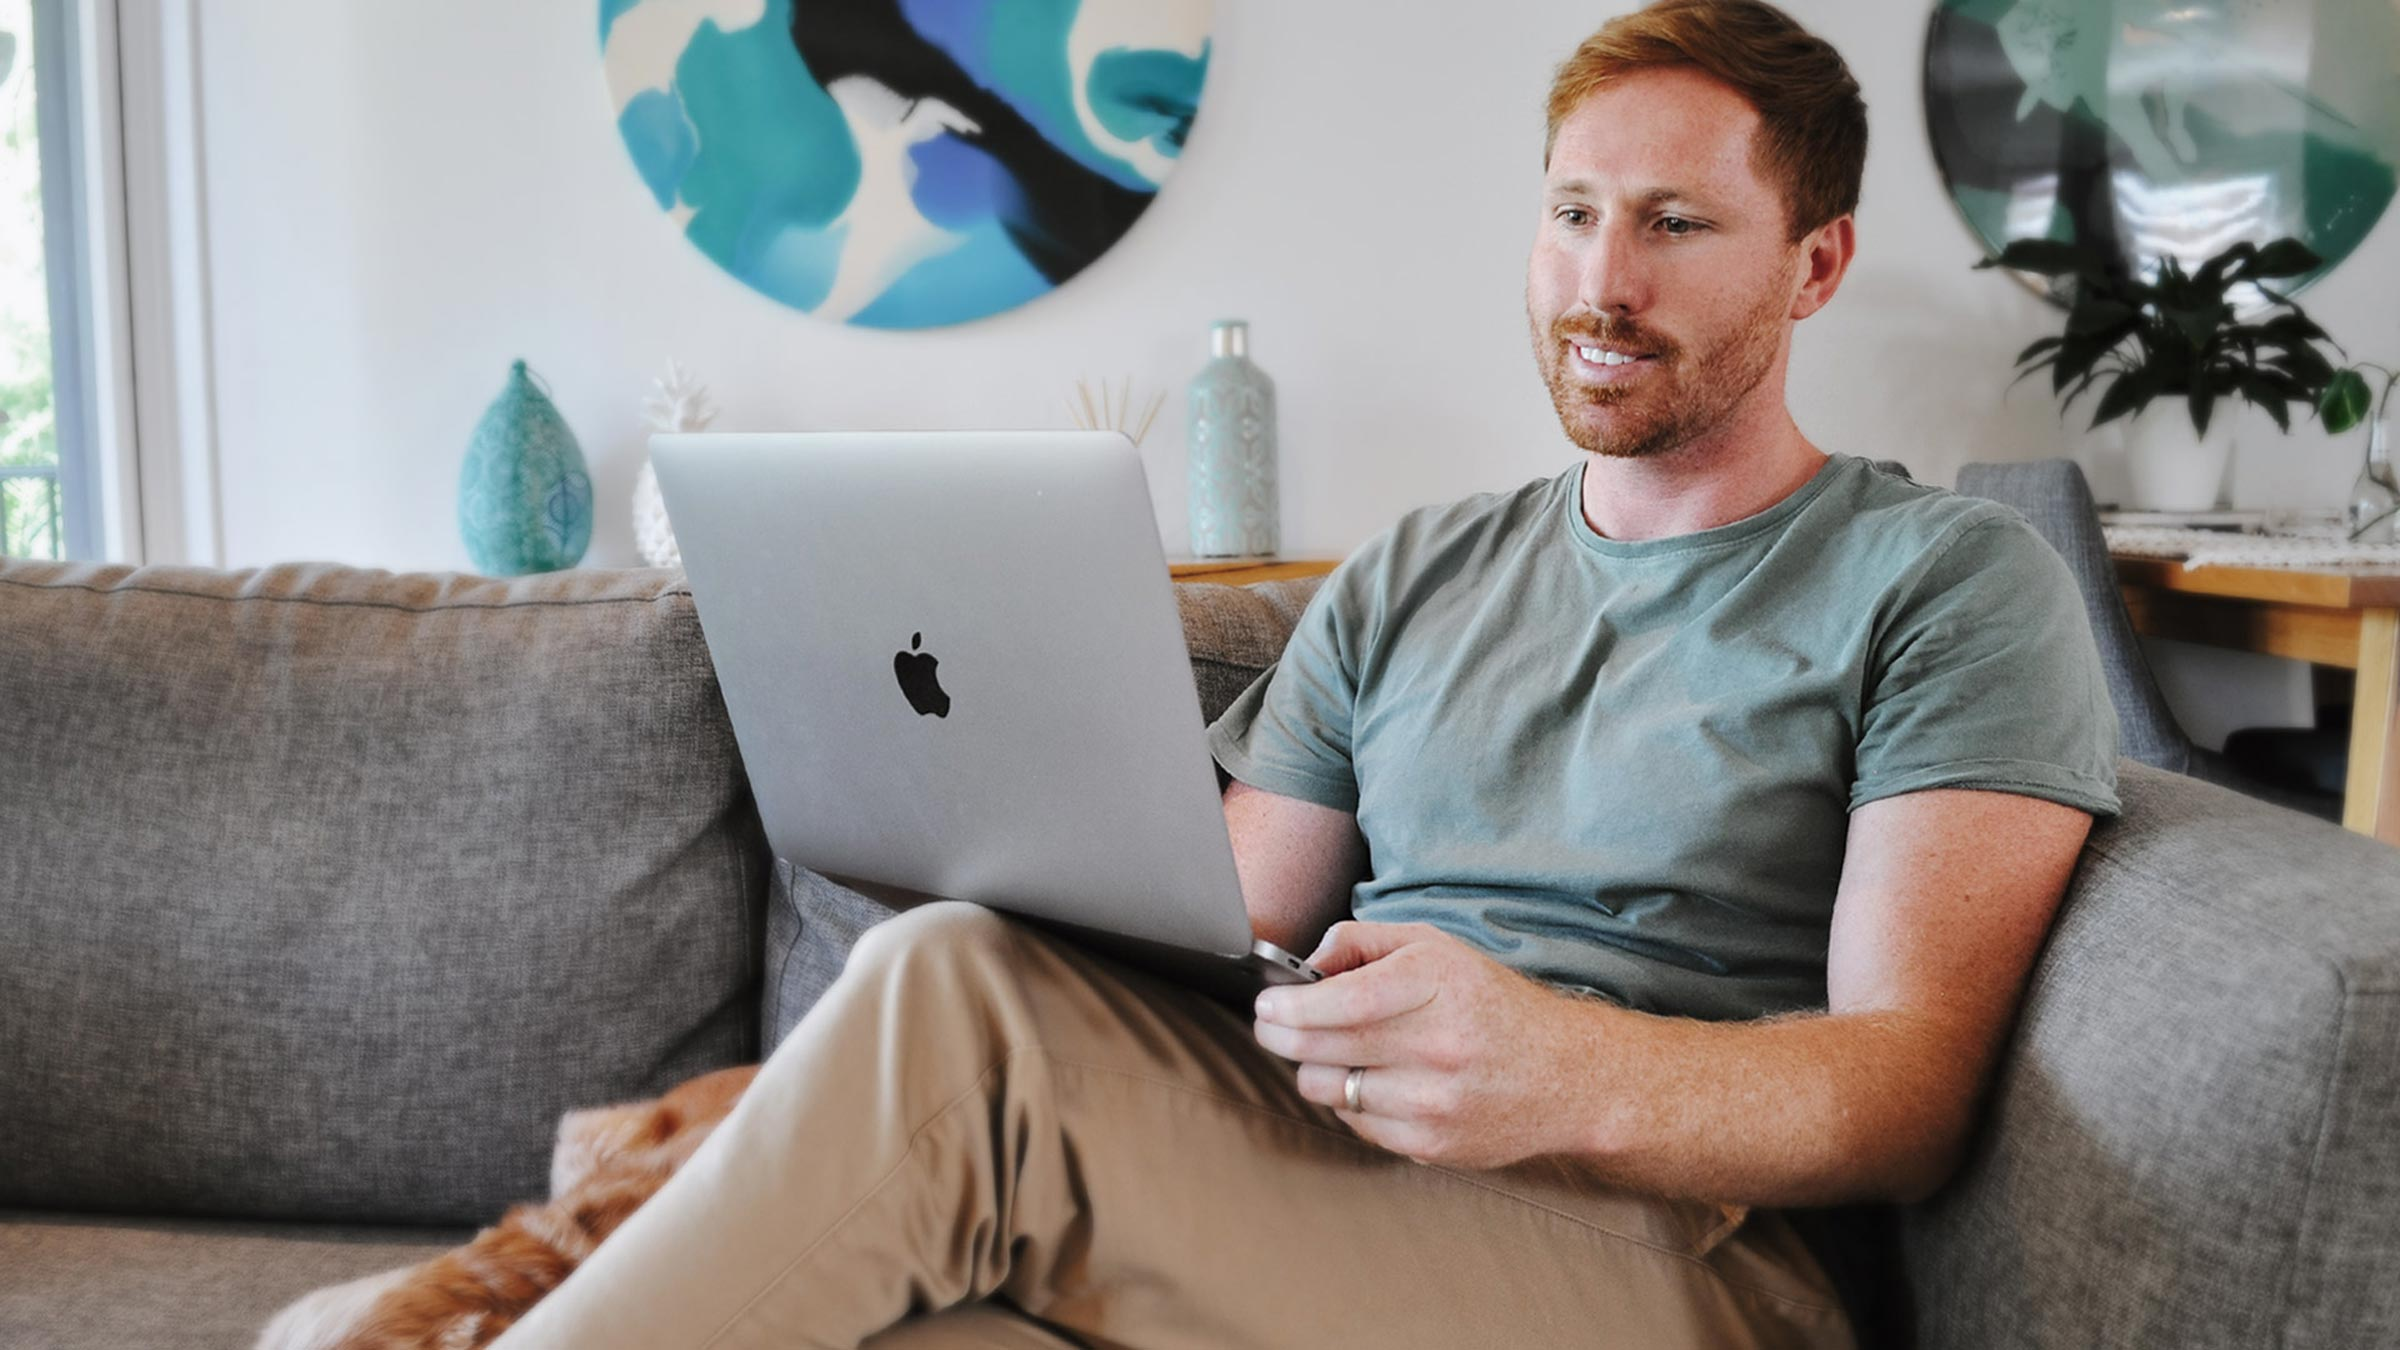 Man sitting on the couch working from home on a laptop